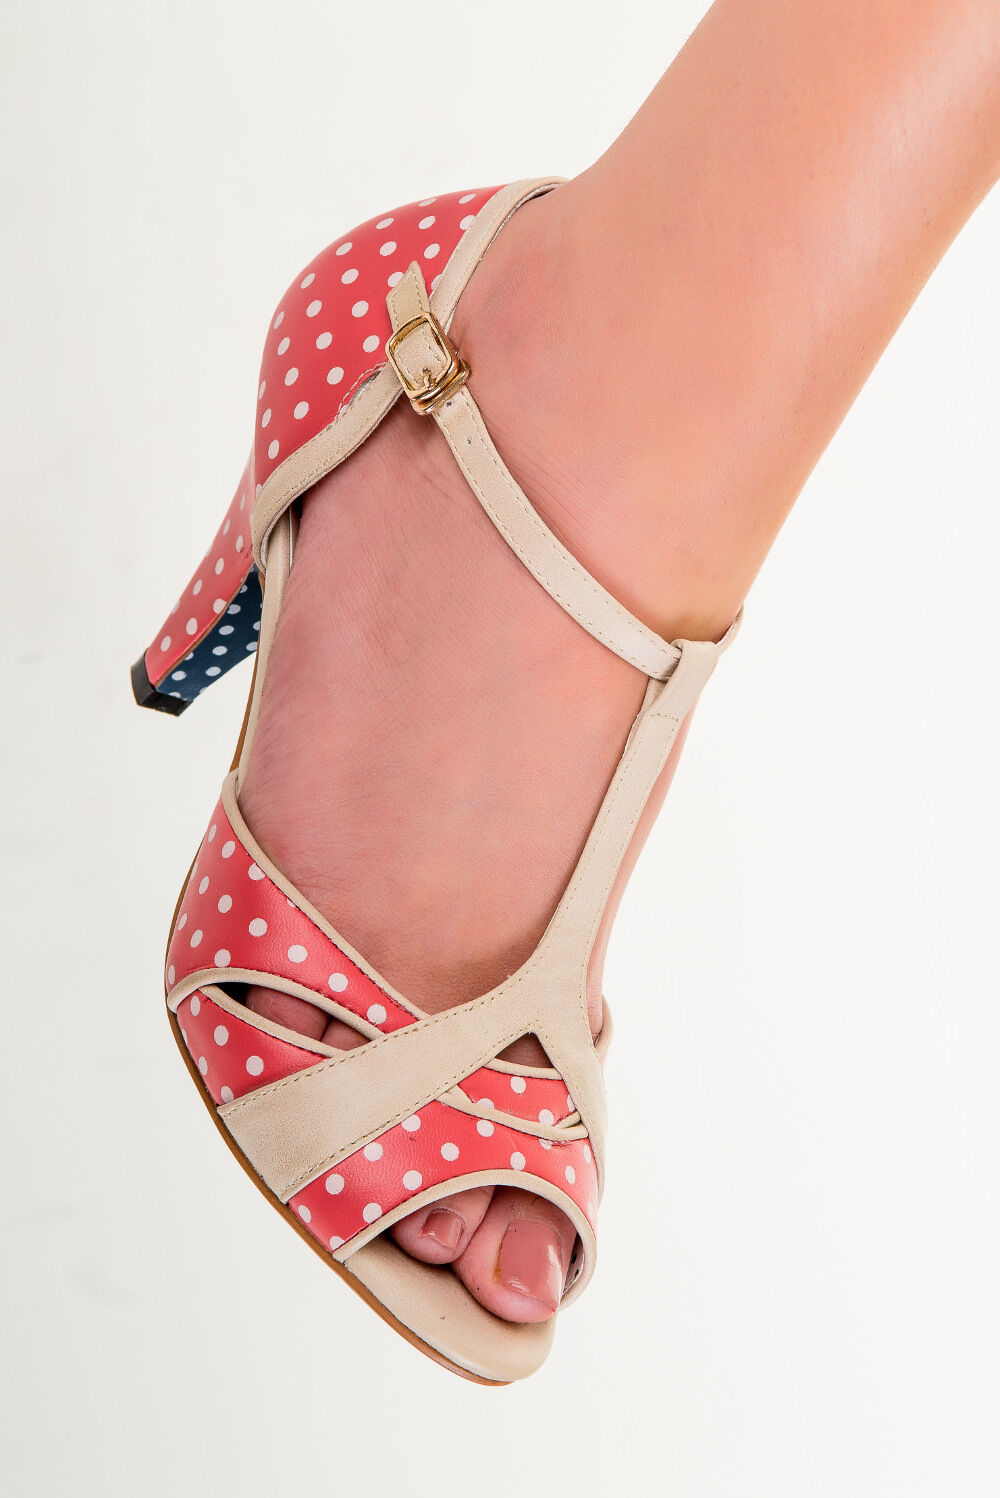 Banned Apparel - ROT Norma Polkadots Dancing Schuhes